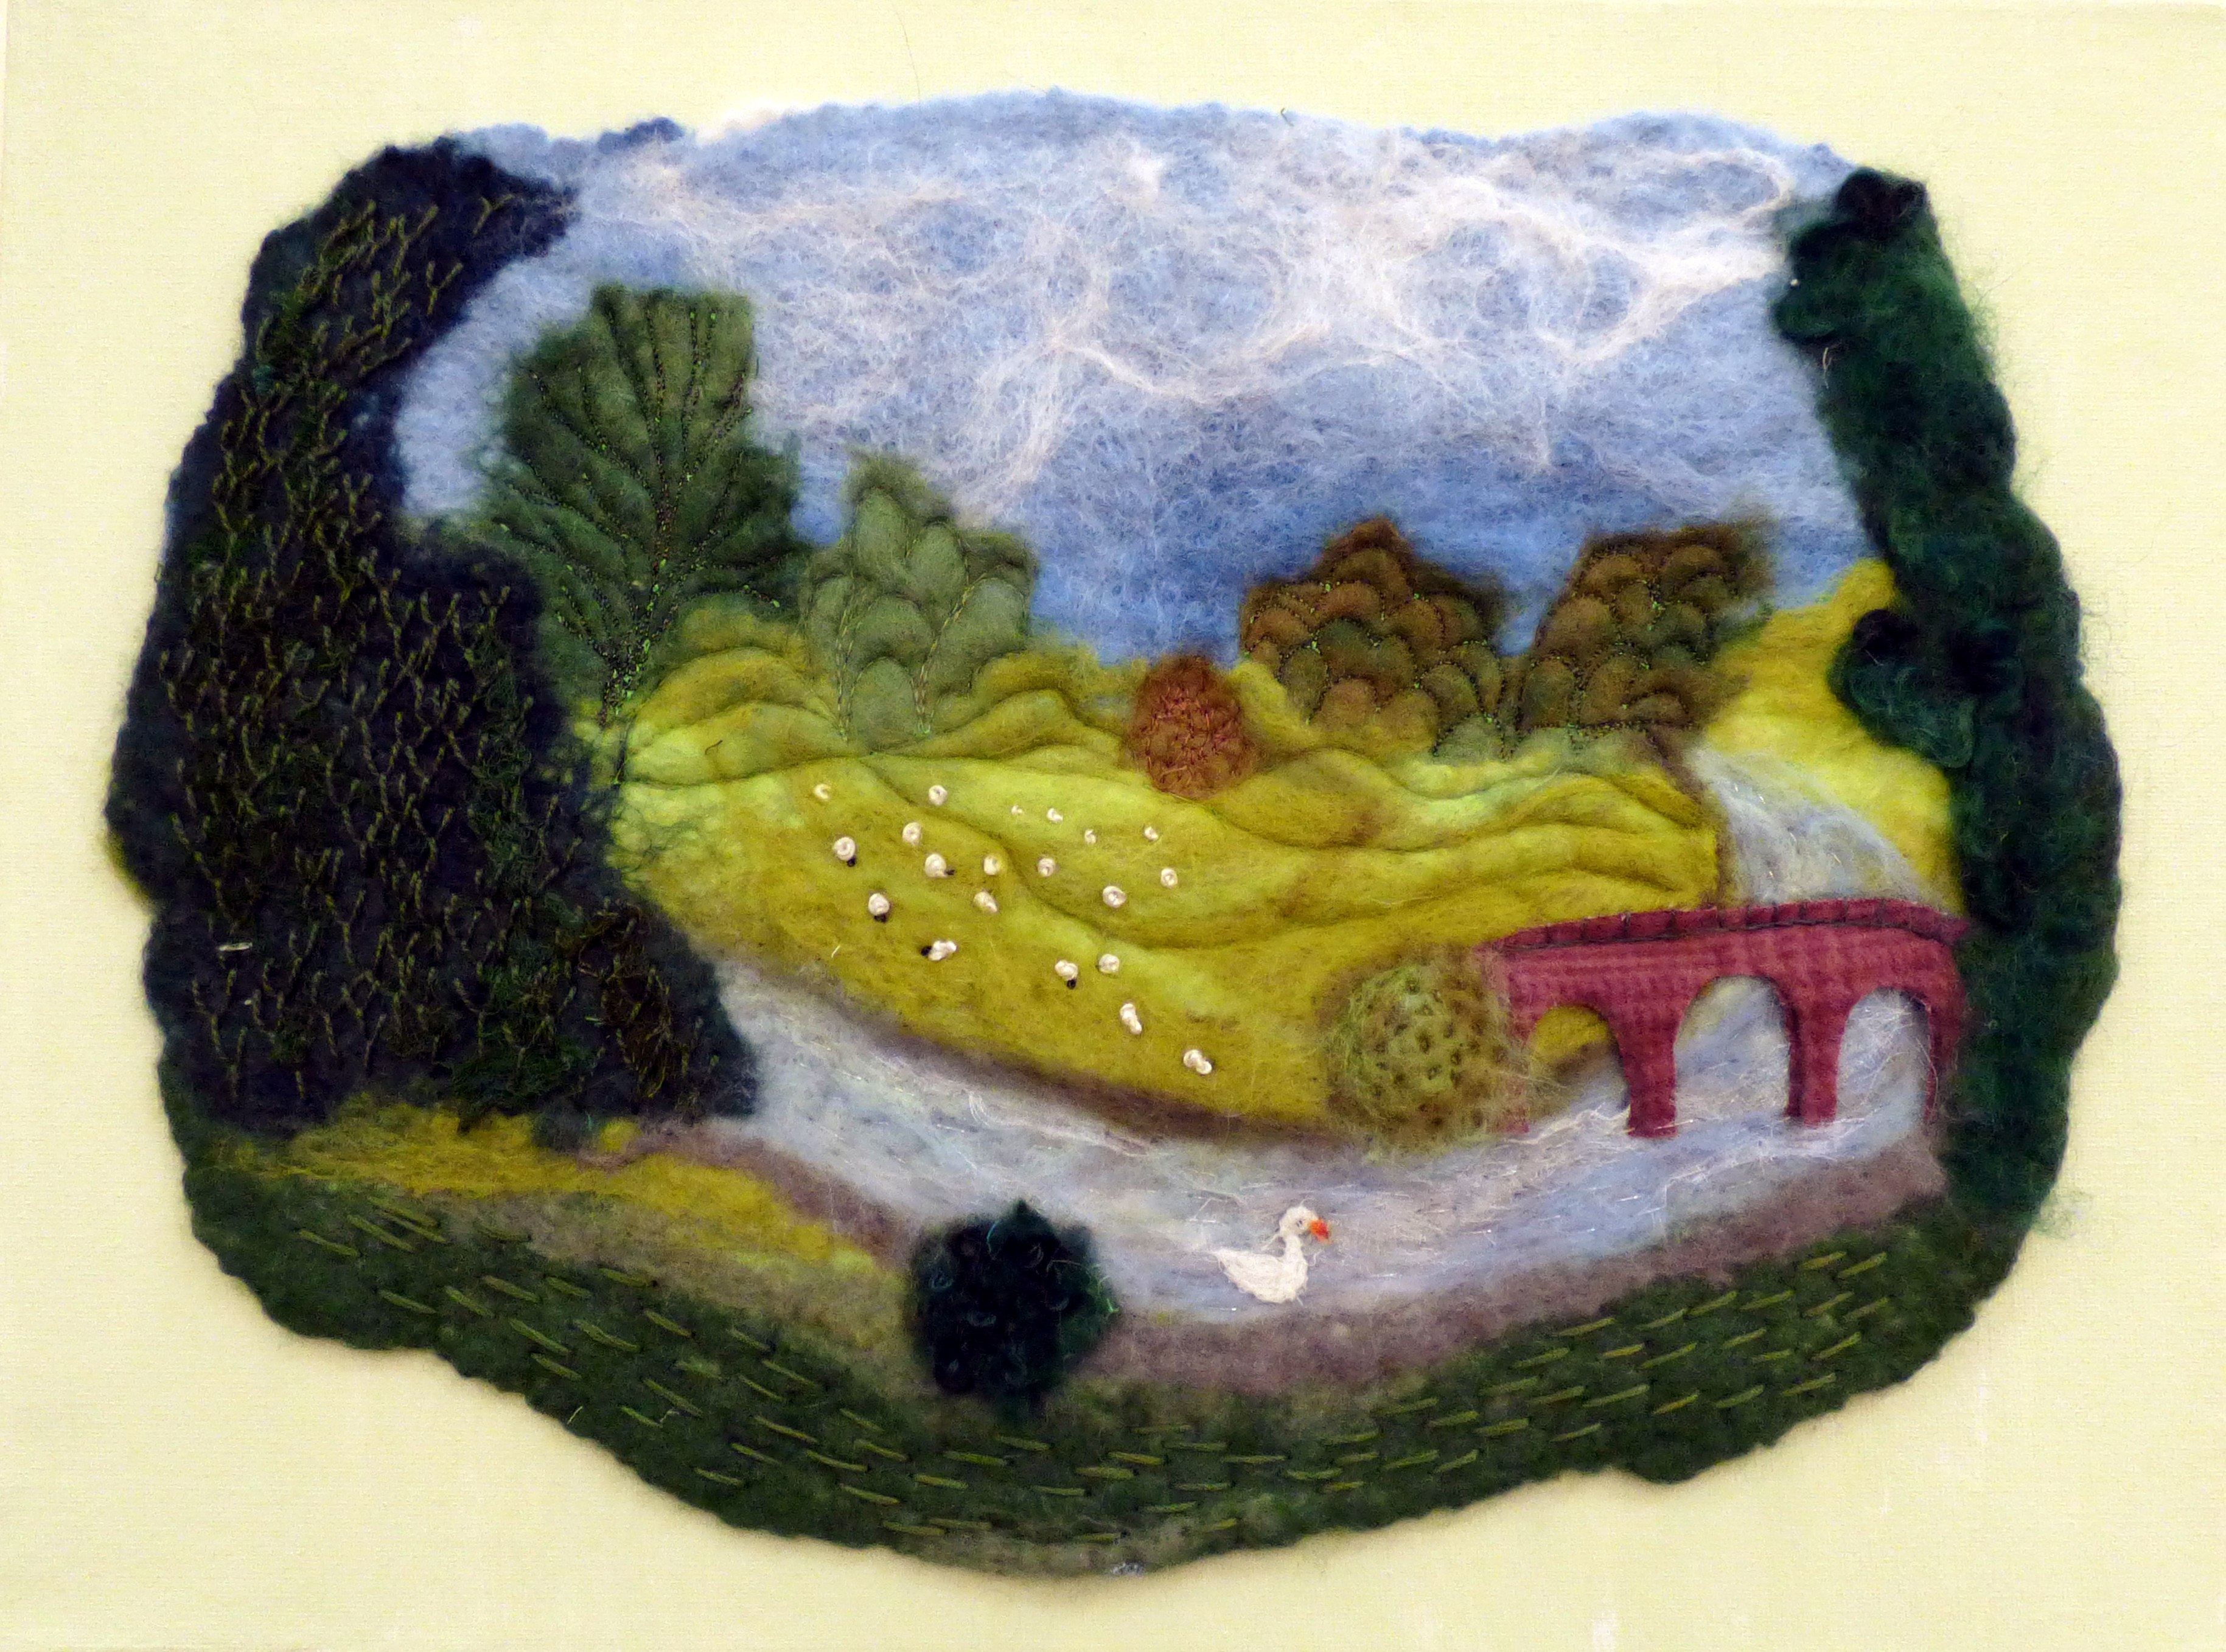 CHATSWORTH by Christina Harris, Glossop & District EG, hand felted piece with add hand stitch